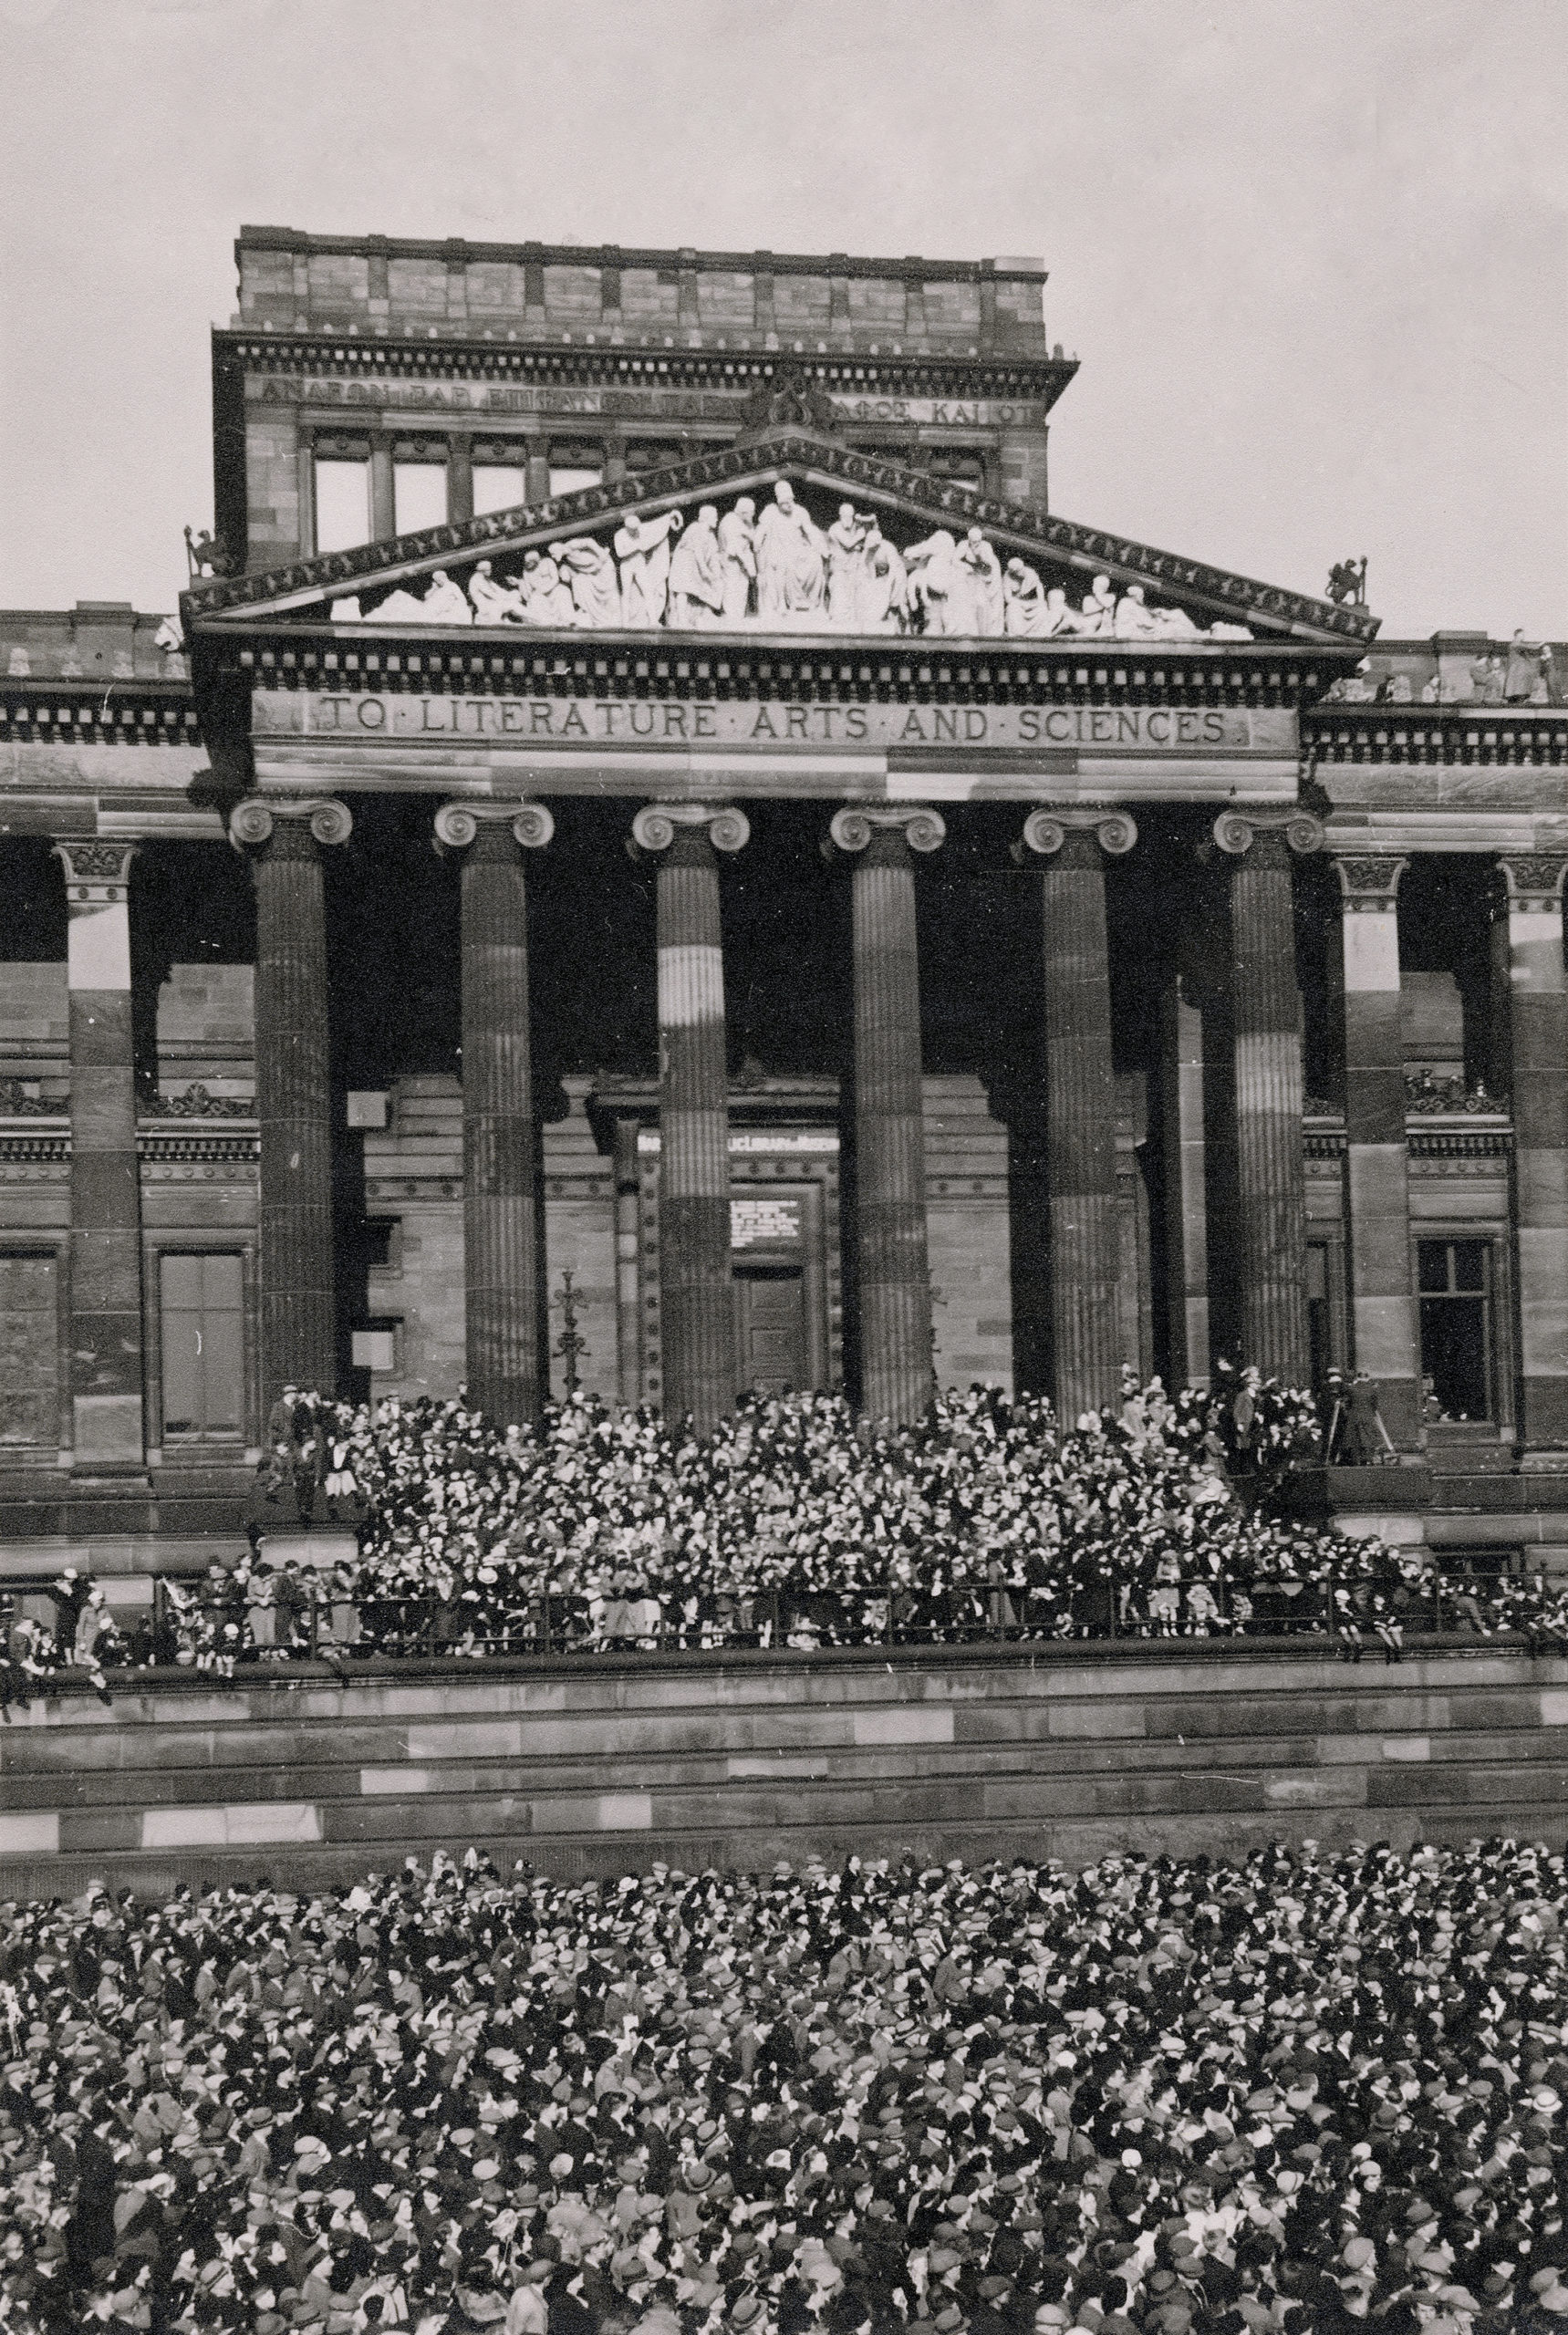 Old photo from the 40s of Preston flag market filled with a crows. Crowd is looking up at Harris Museum balcony which is also filled with people celebrating and listening to a speech